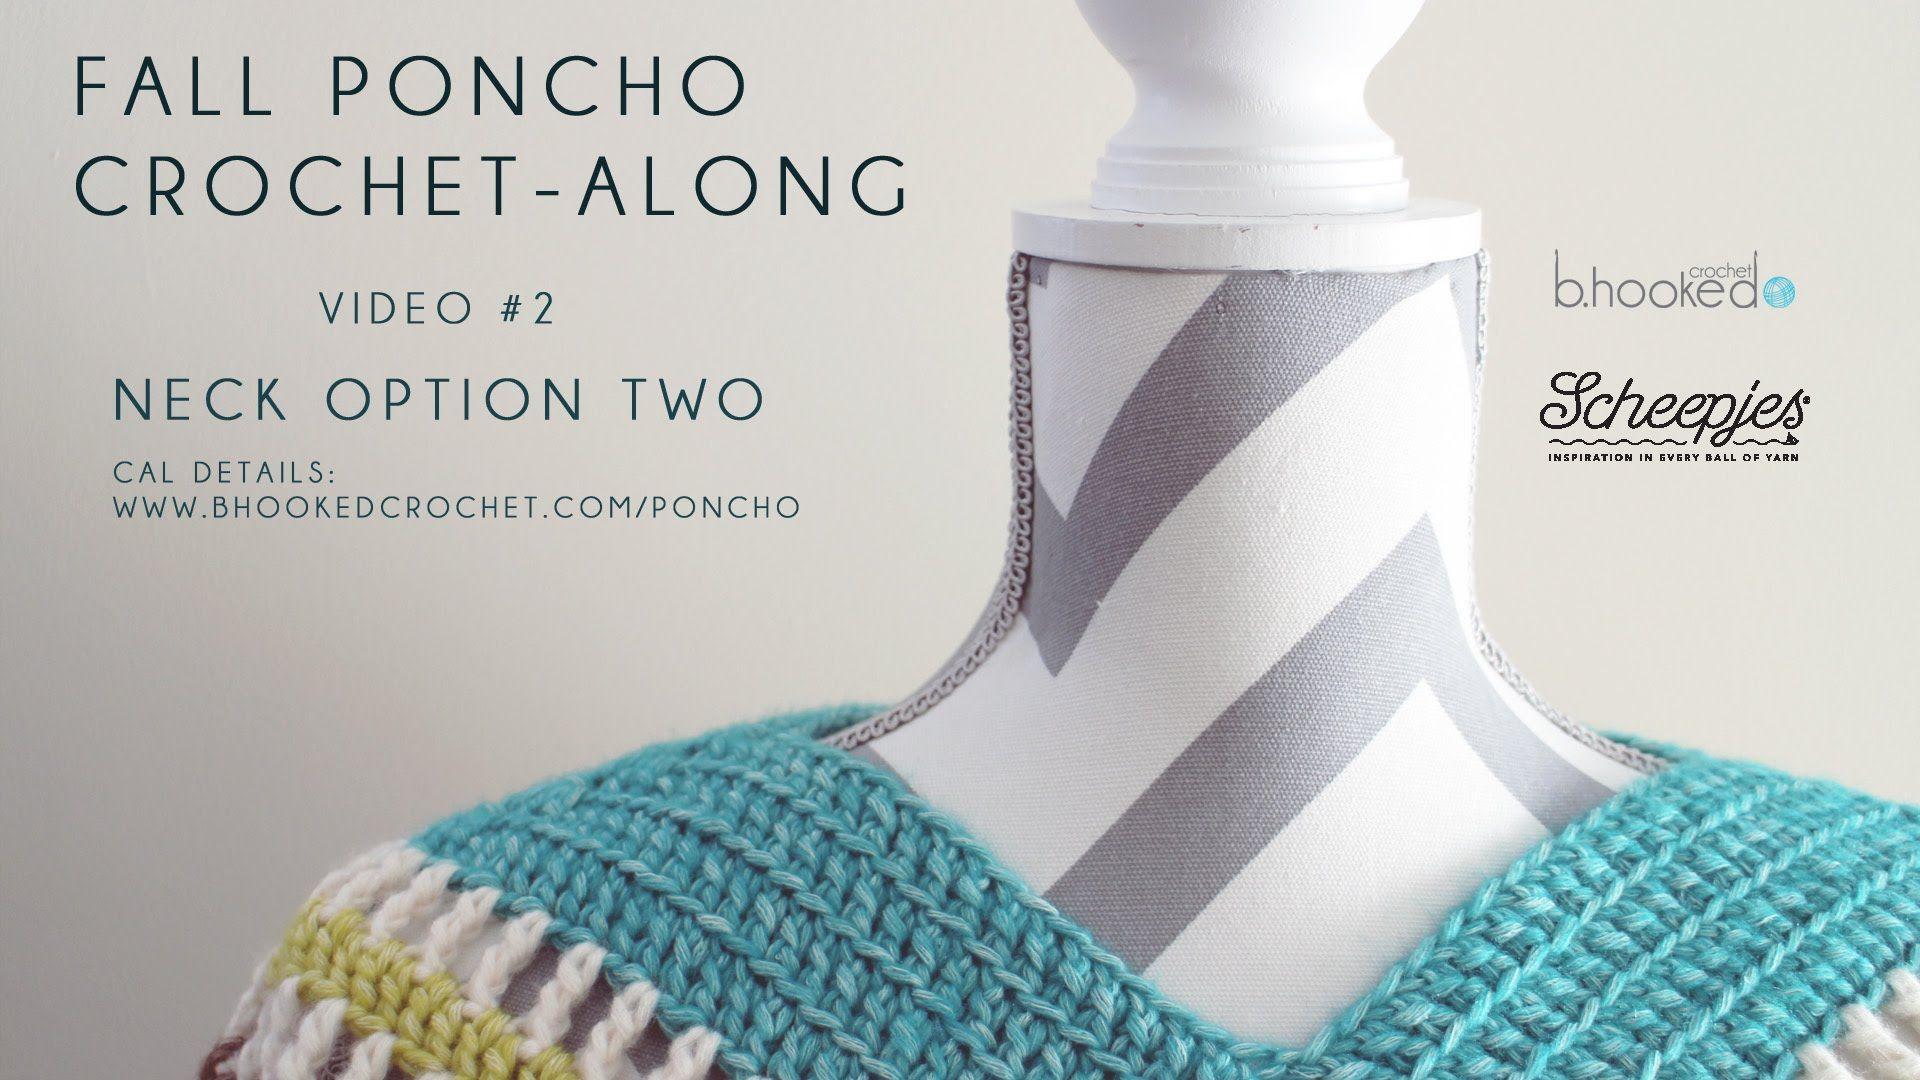 Fall Poncho CAL Neck Option Two Right Hand Video 2 | crochet 3 ...